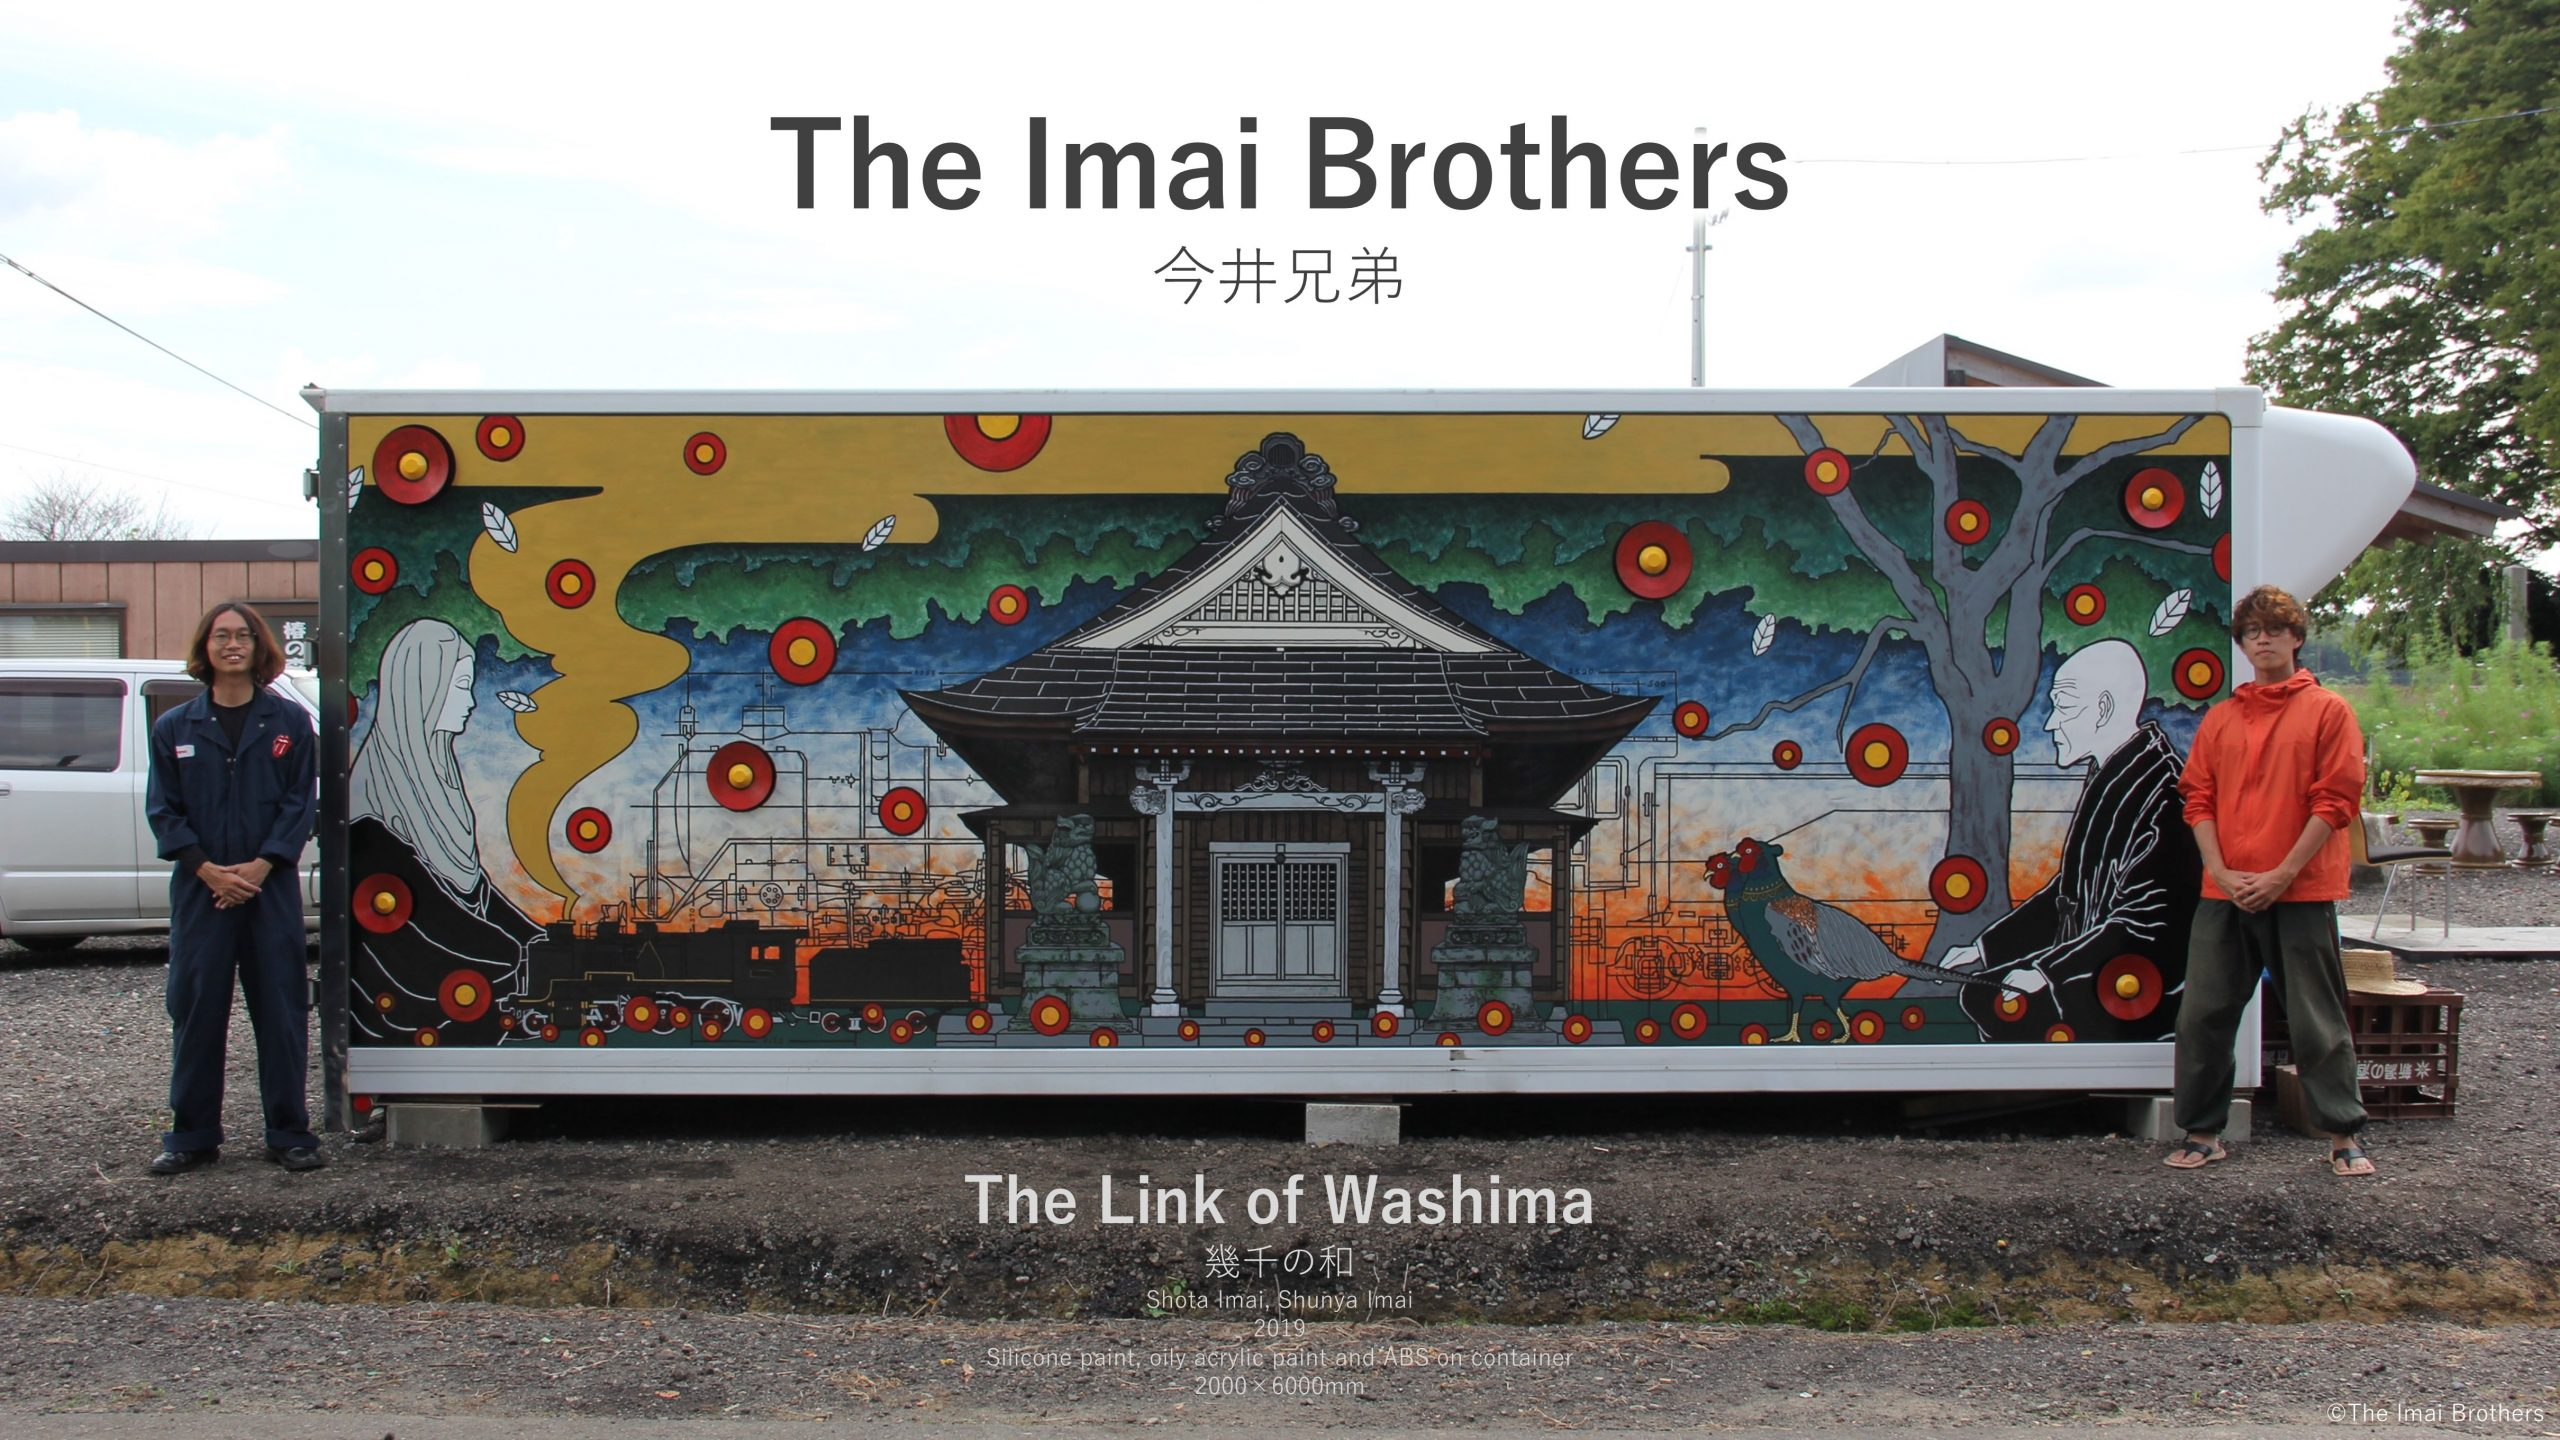 The Link of Washima by The Imai Brothers 今井兄弟による美術作品「幾千の和」